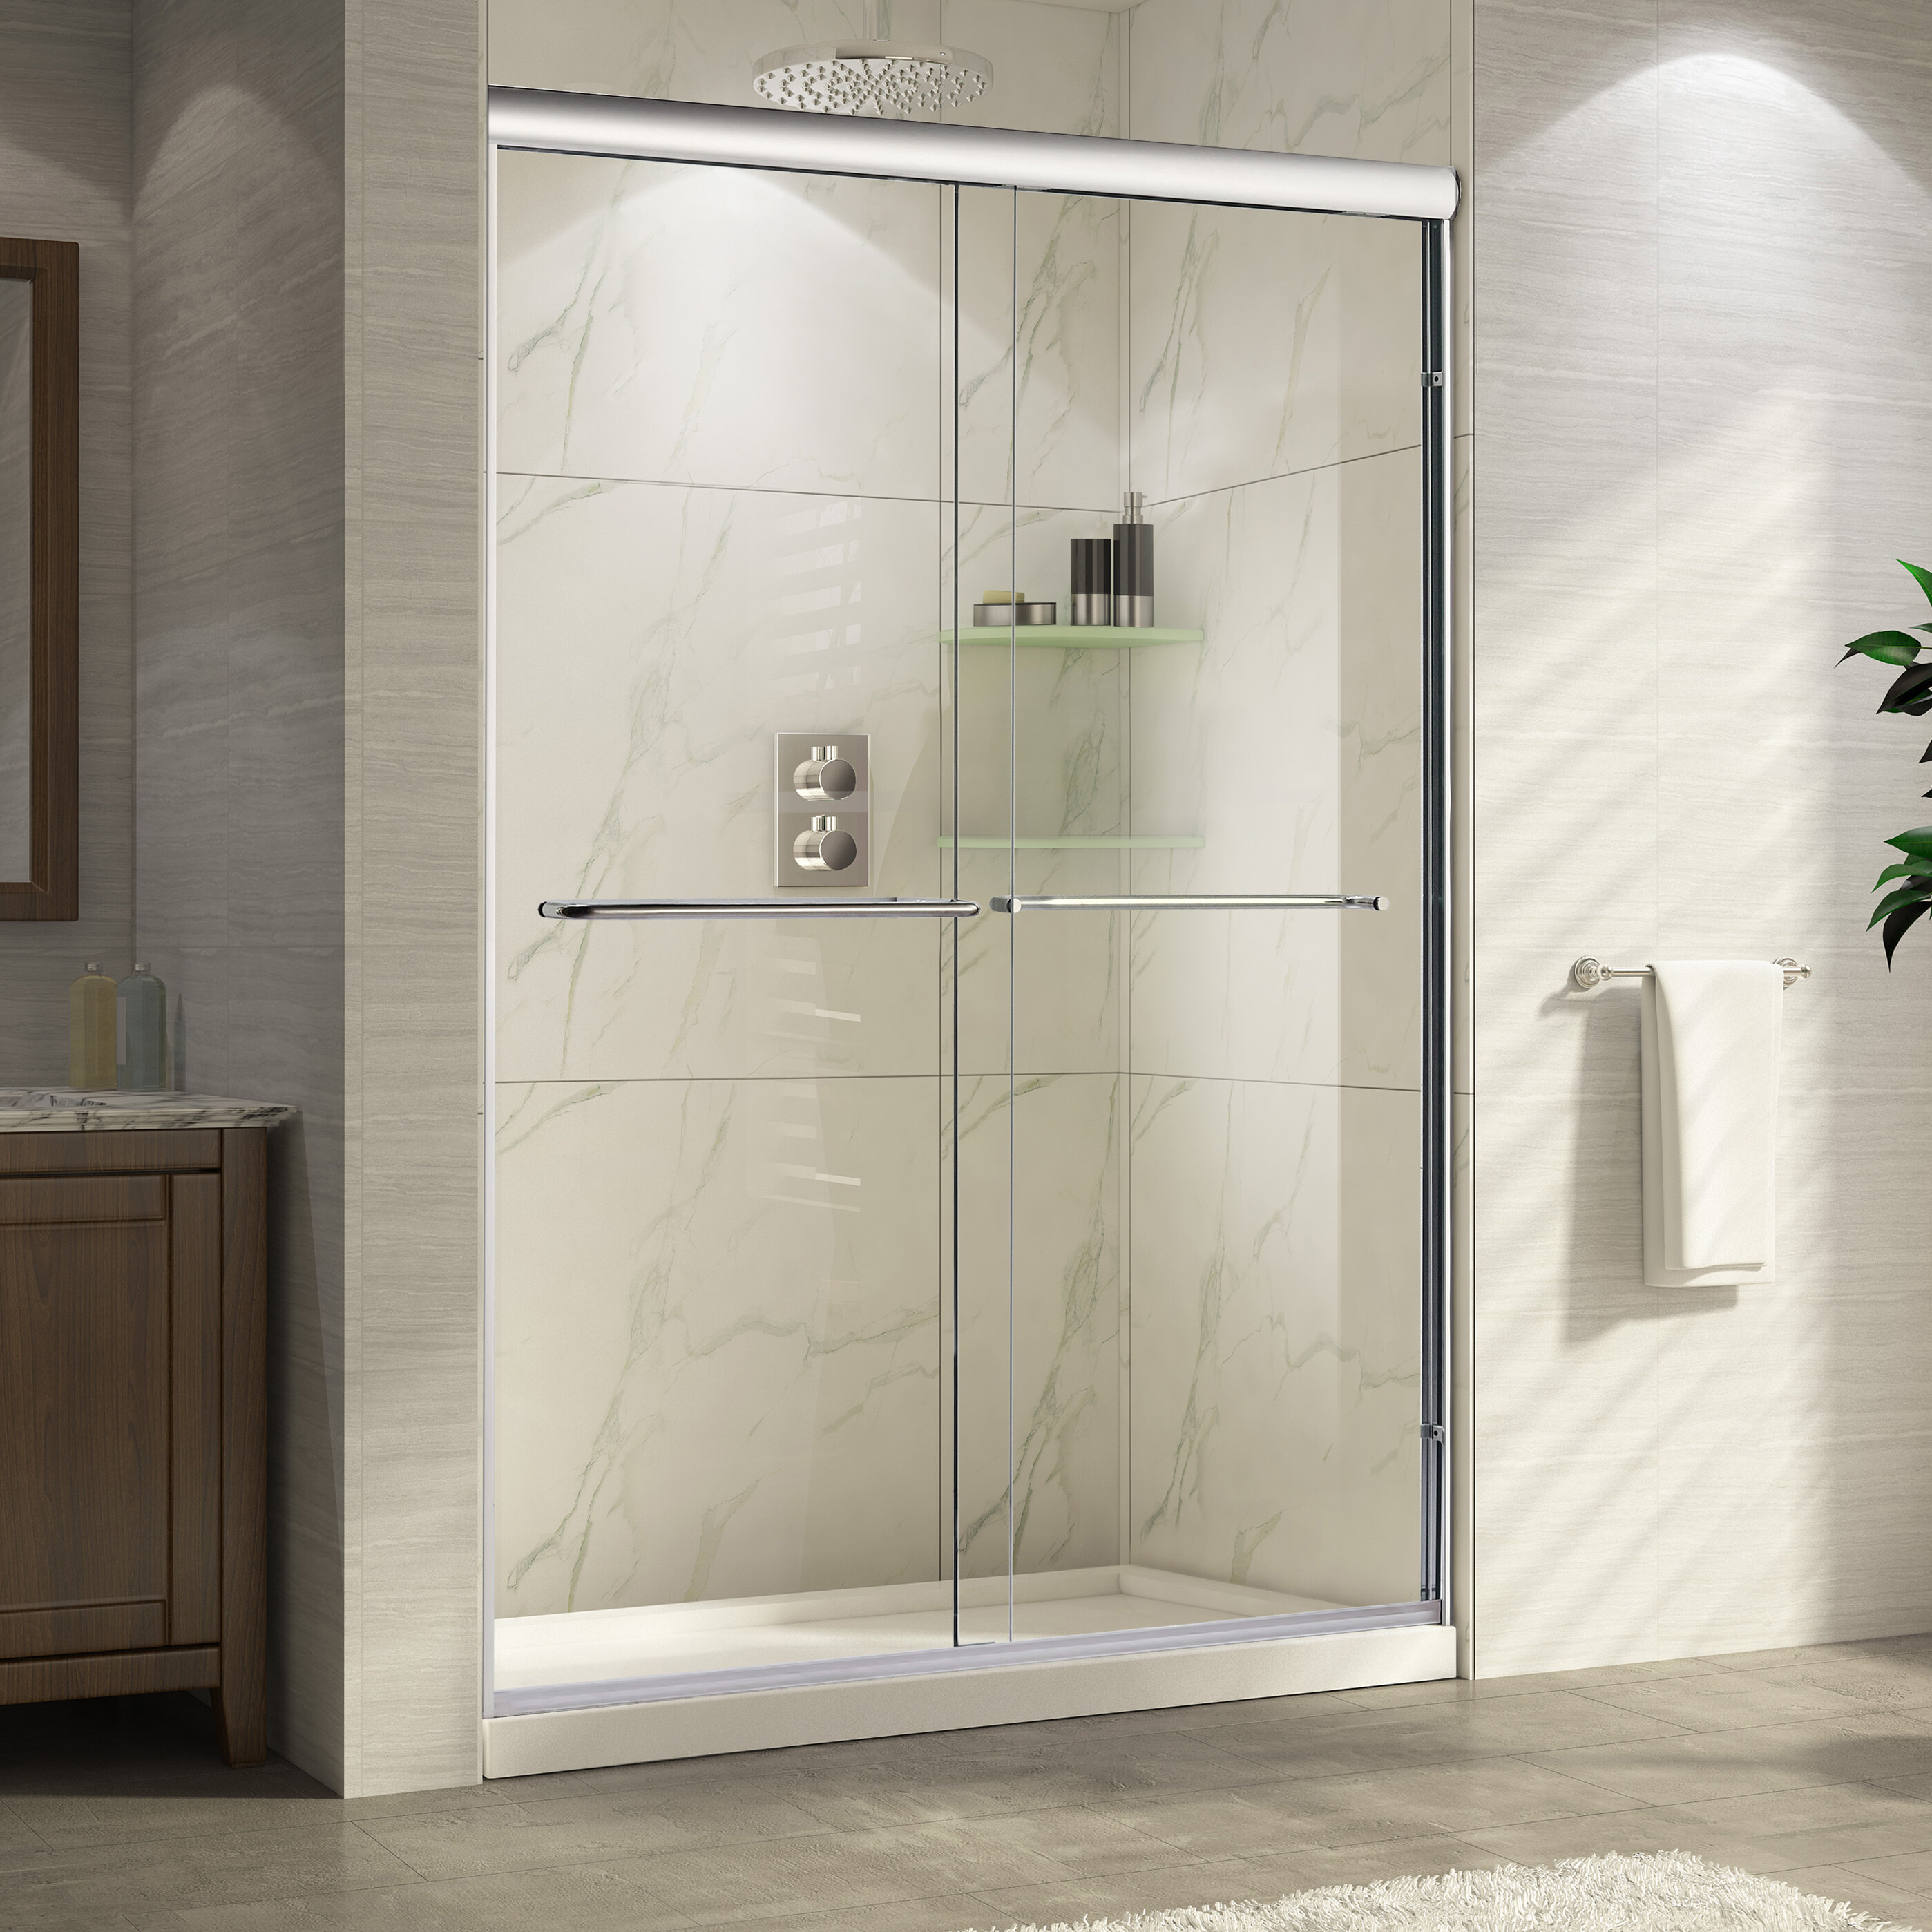 cdm george cdmi ut st enclosure serenity sliding doors shower